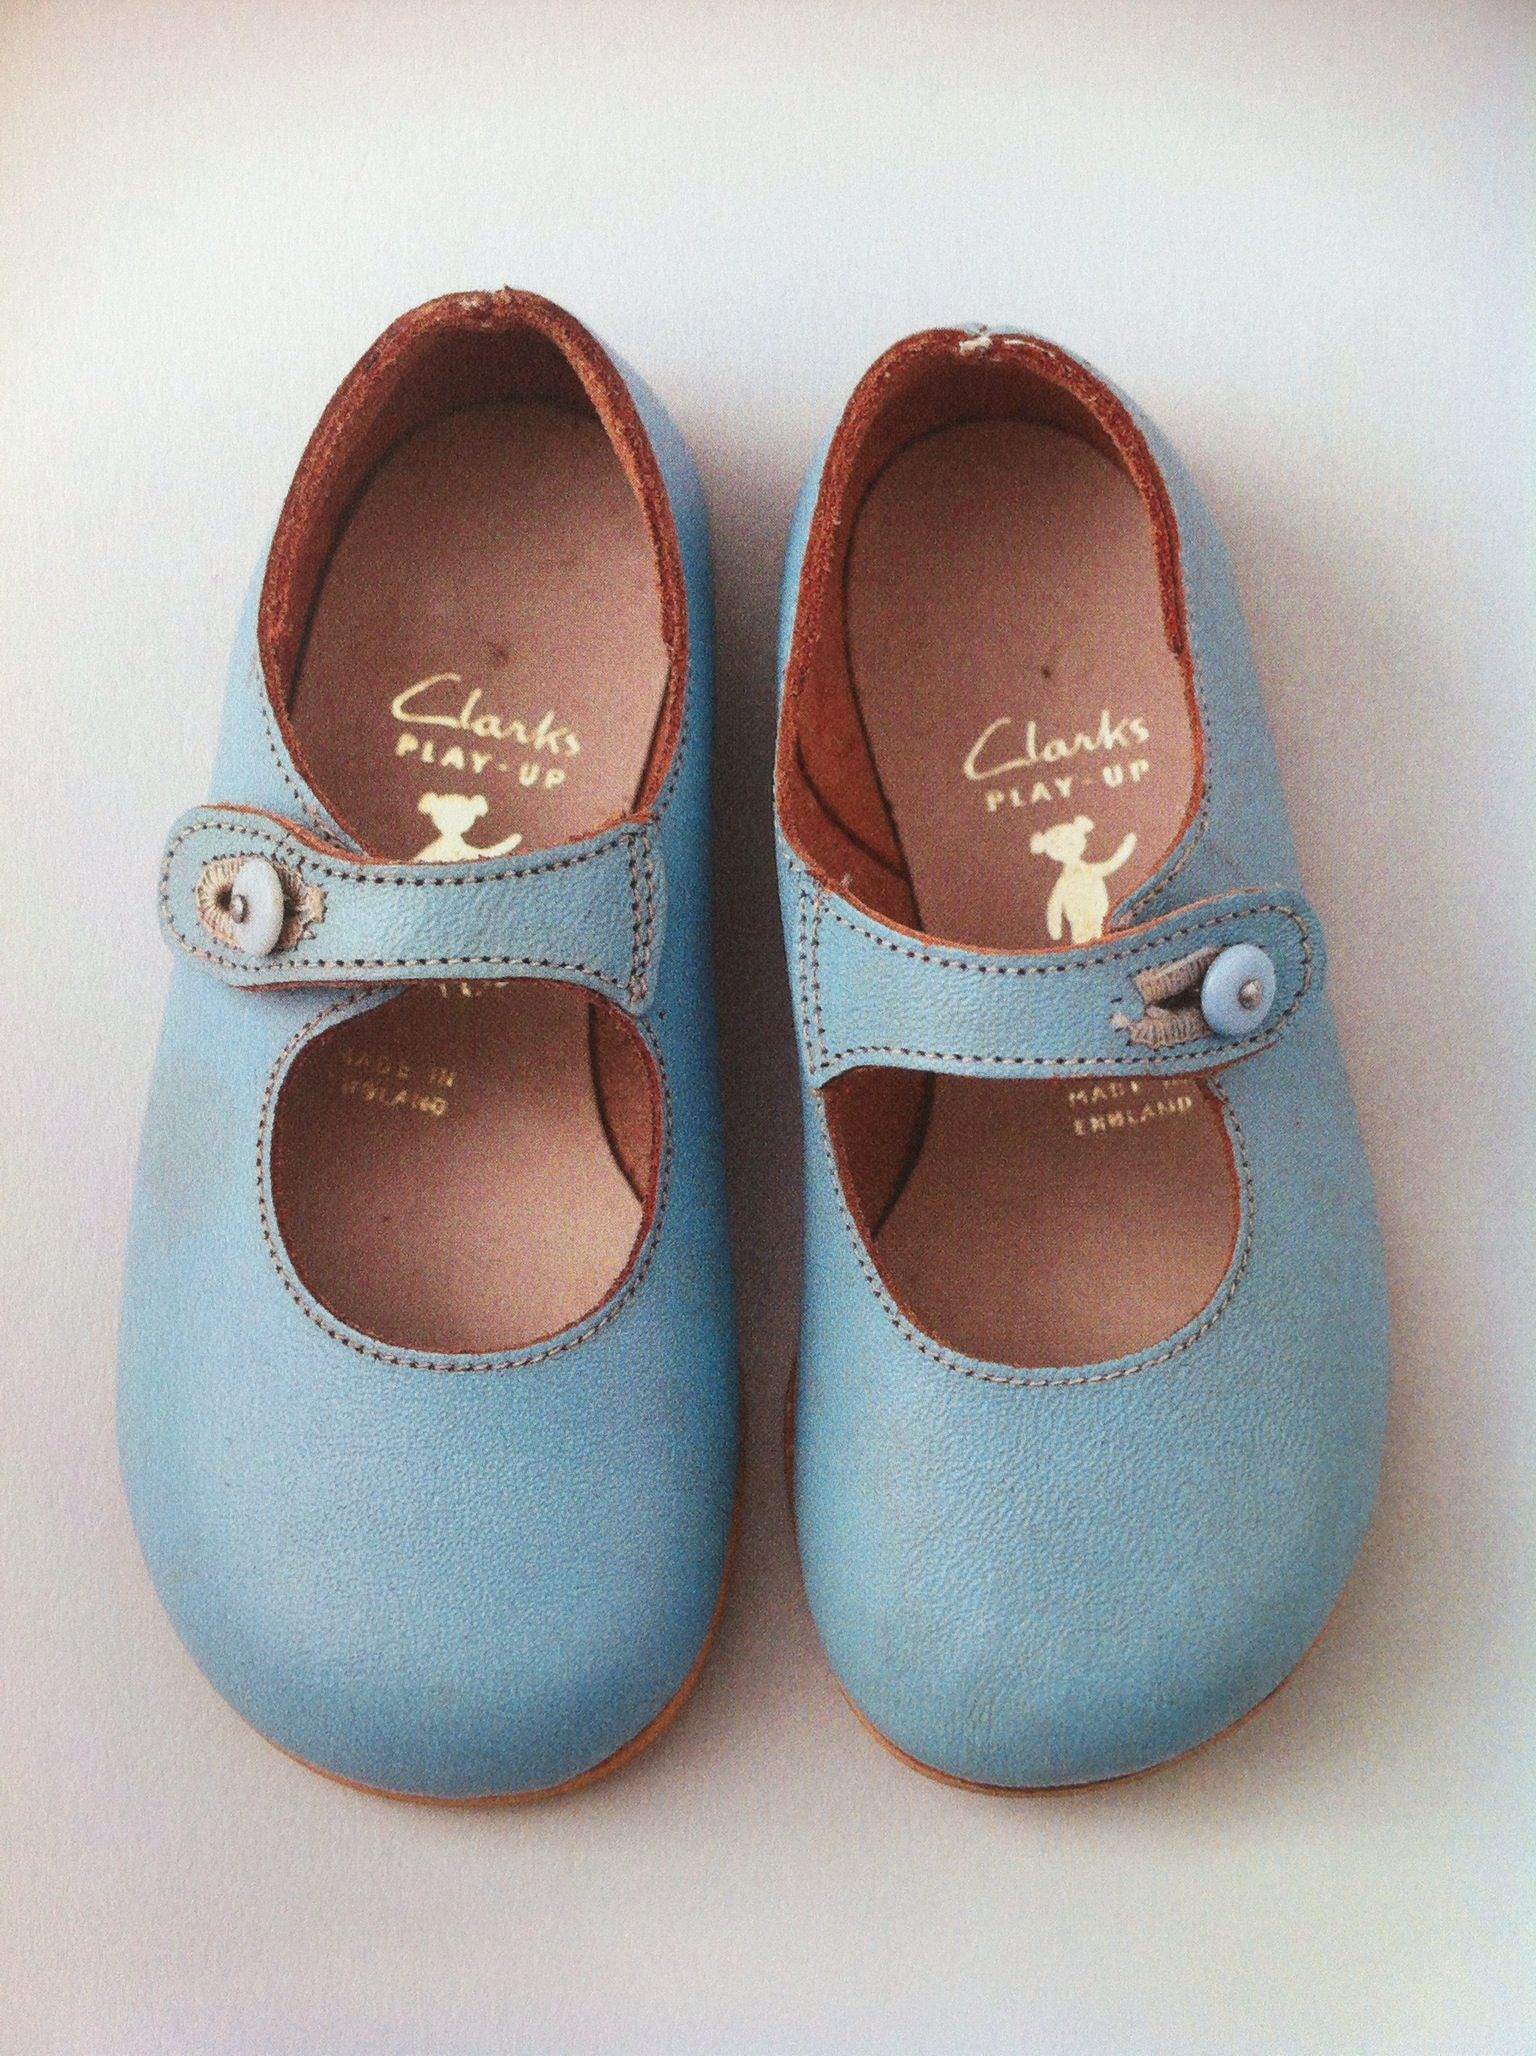 80c0c359e Vintage girls shoes from Clarks 'Play Ups' - they should reissue these!